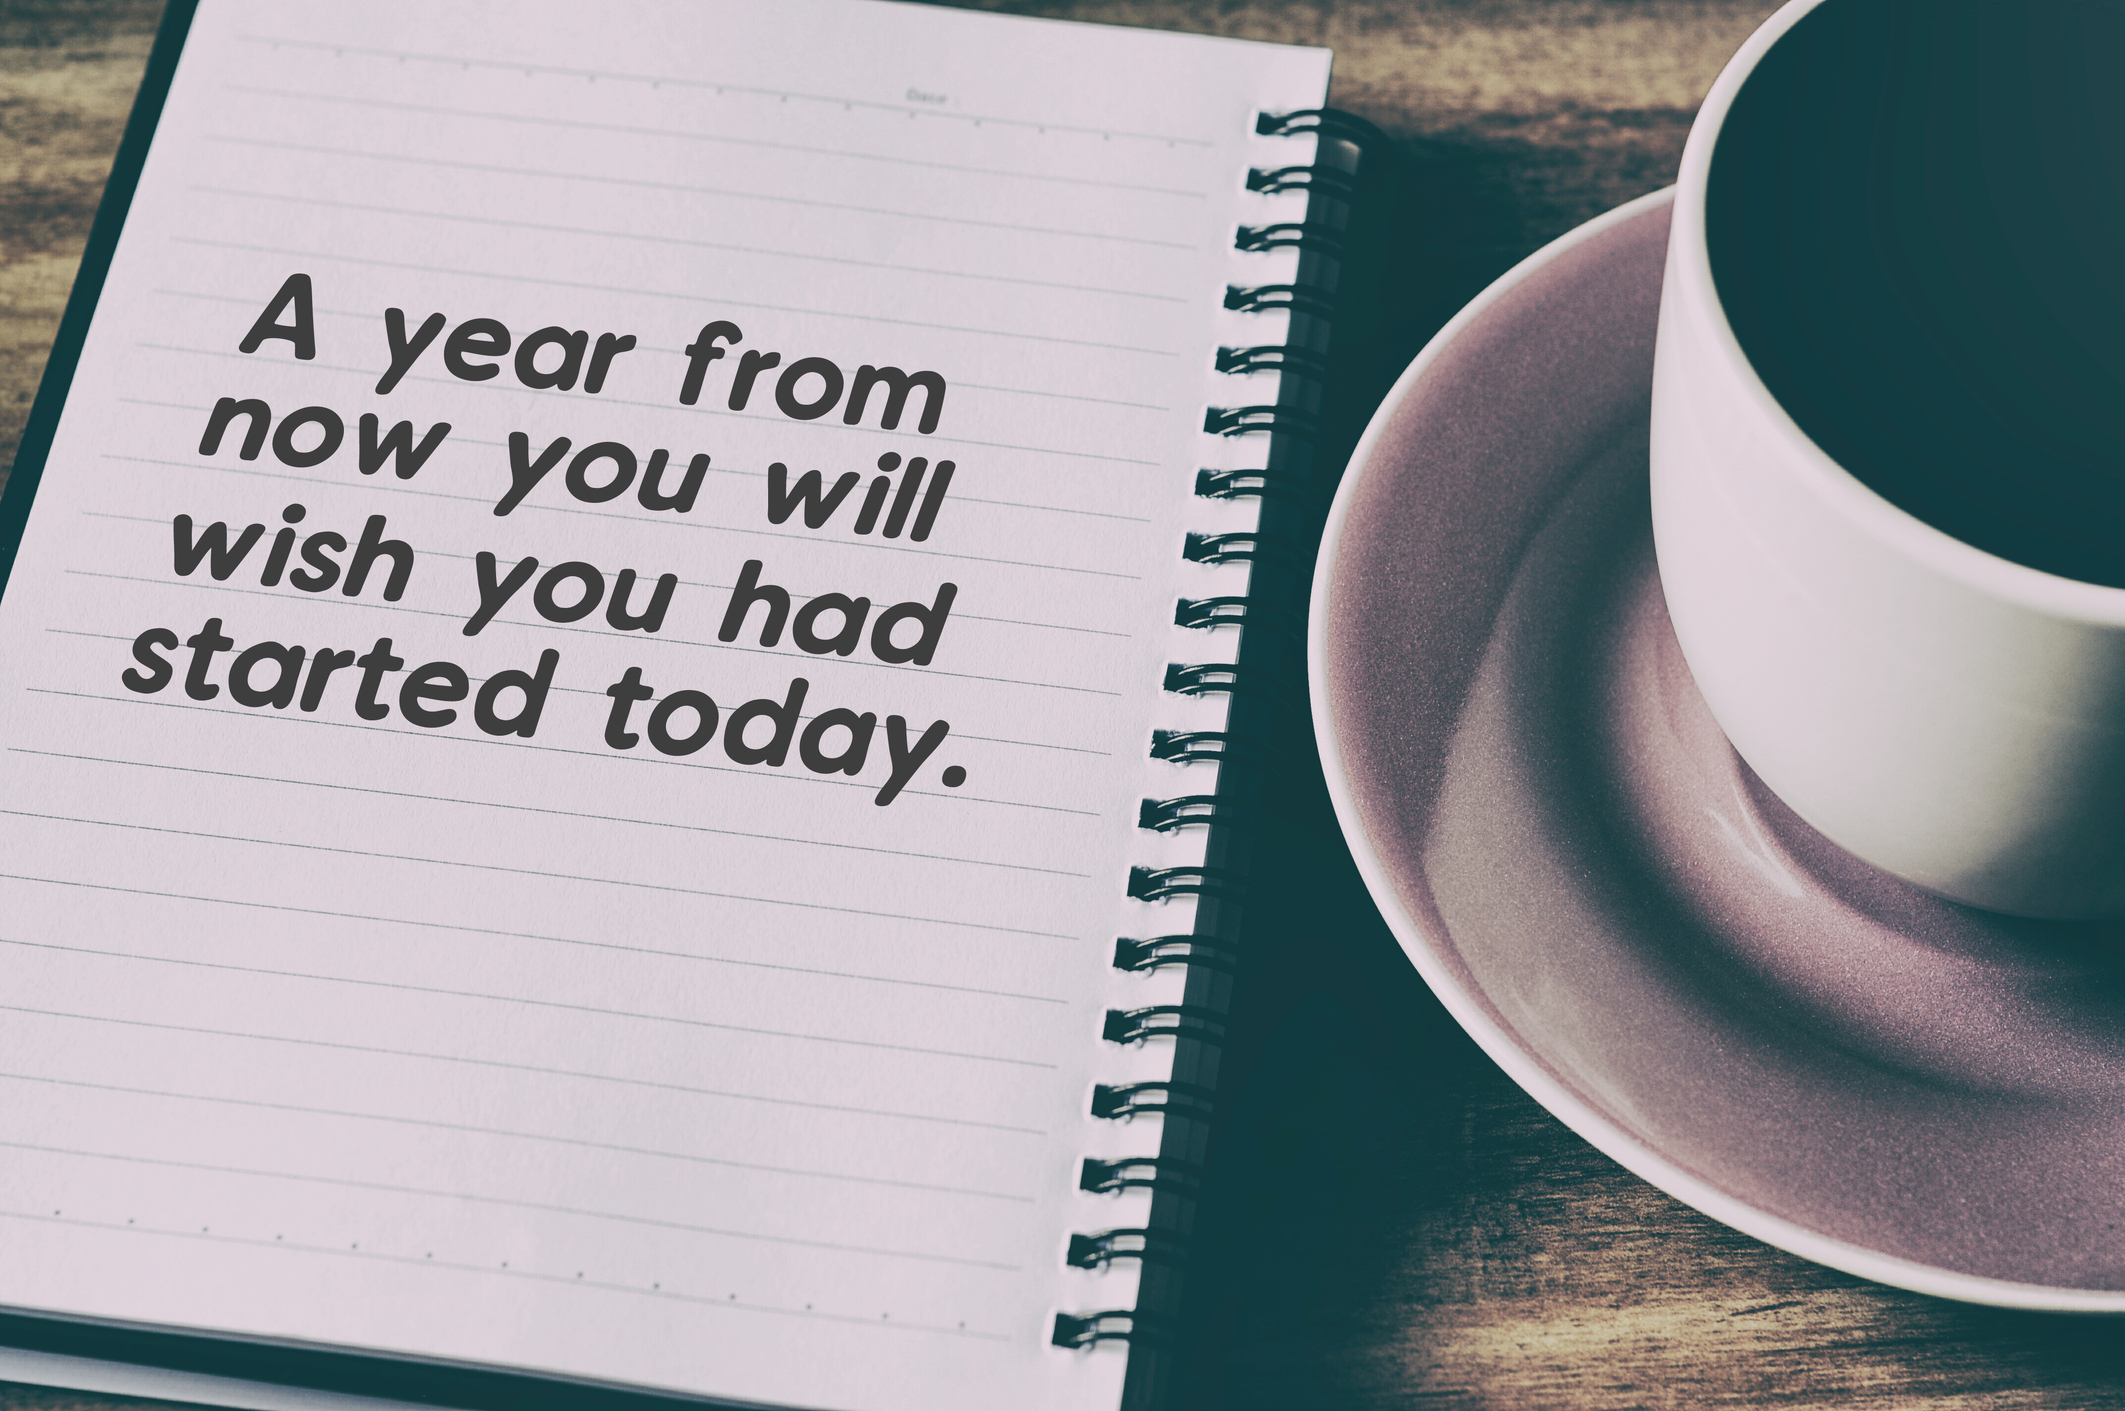 Inspirational and motivational quotes - One year from now you will wish yo had started today.